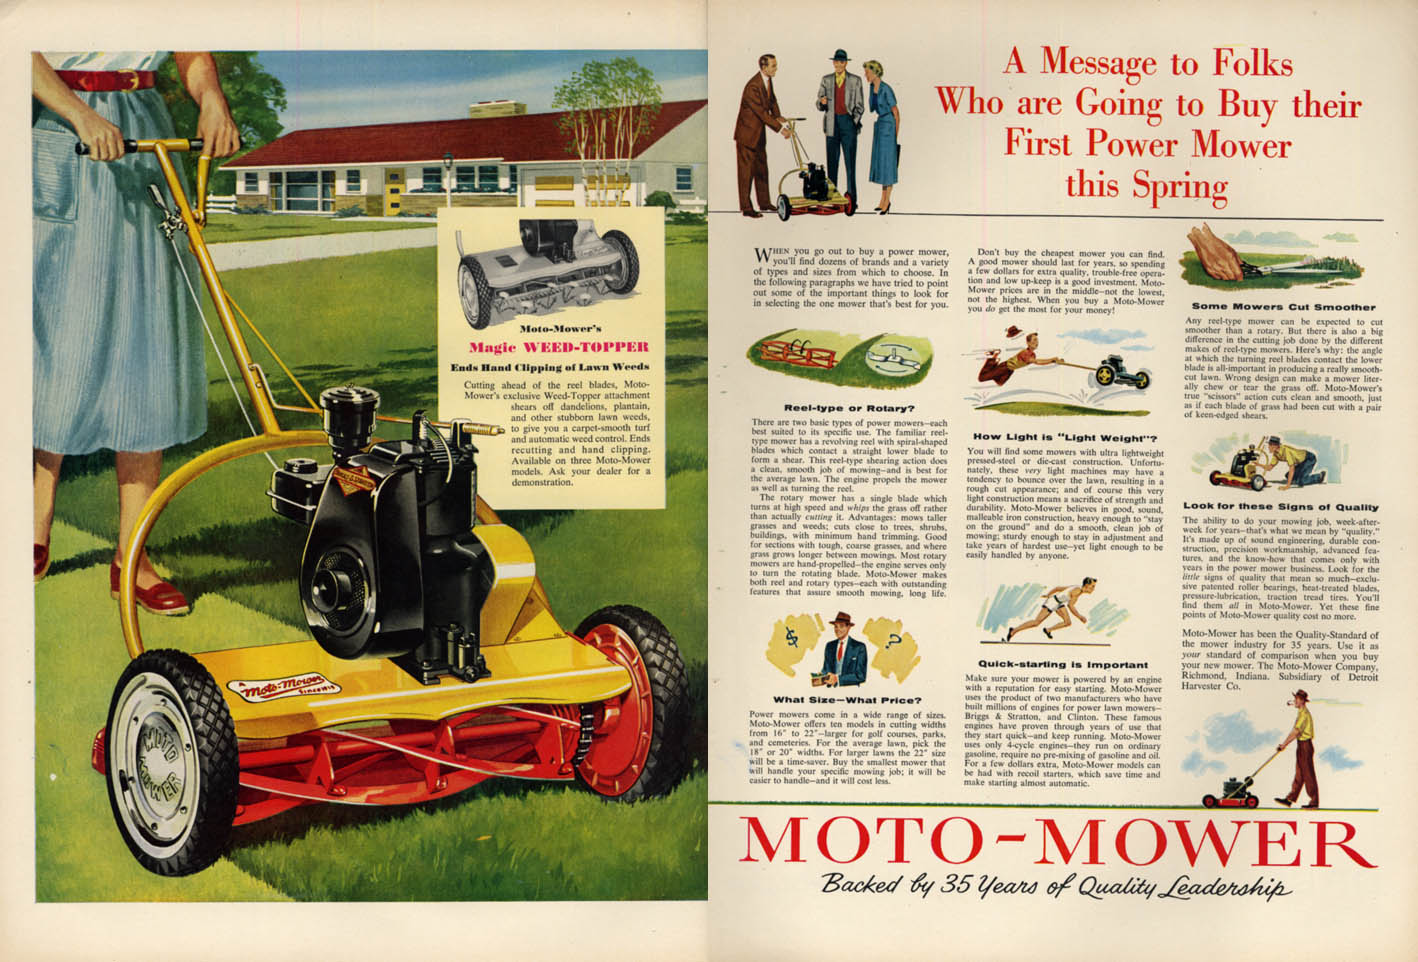 Image for Message to Folks Buying their First Power Mower - Motor-Mower lawn mower ad 1954